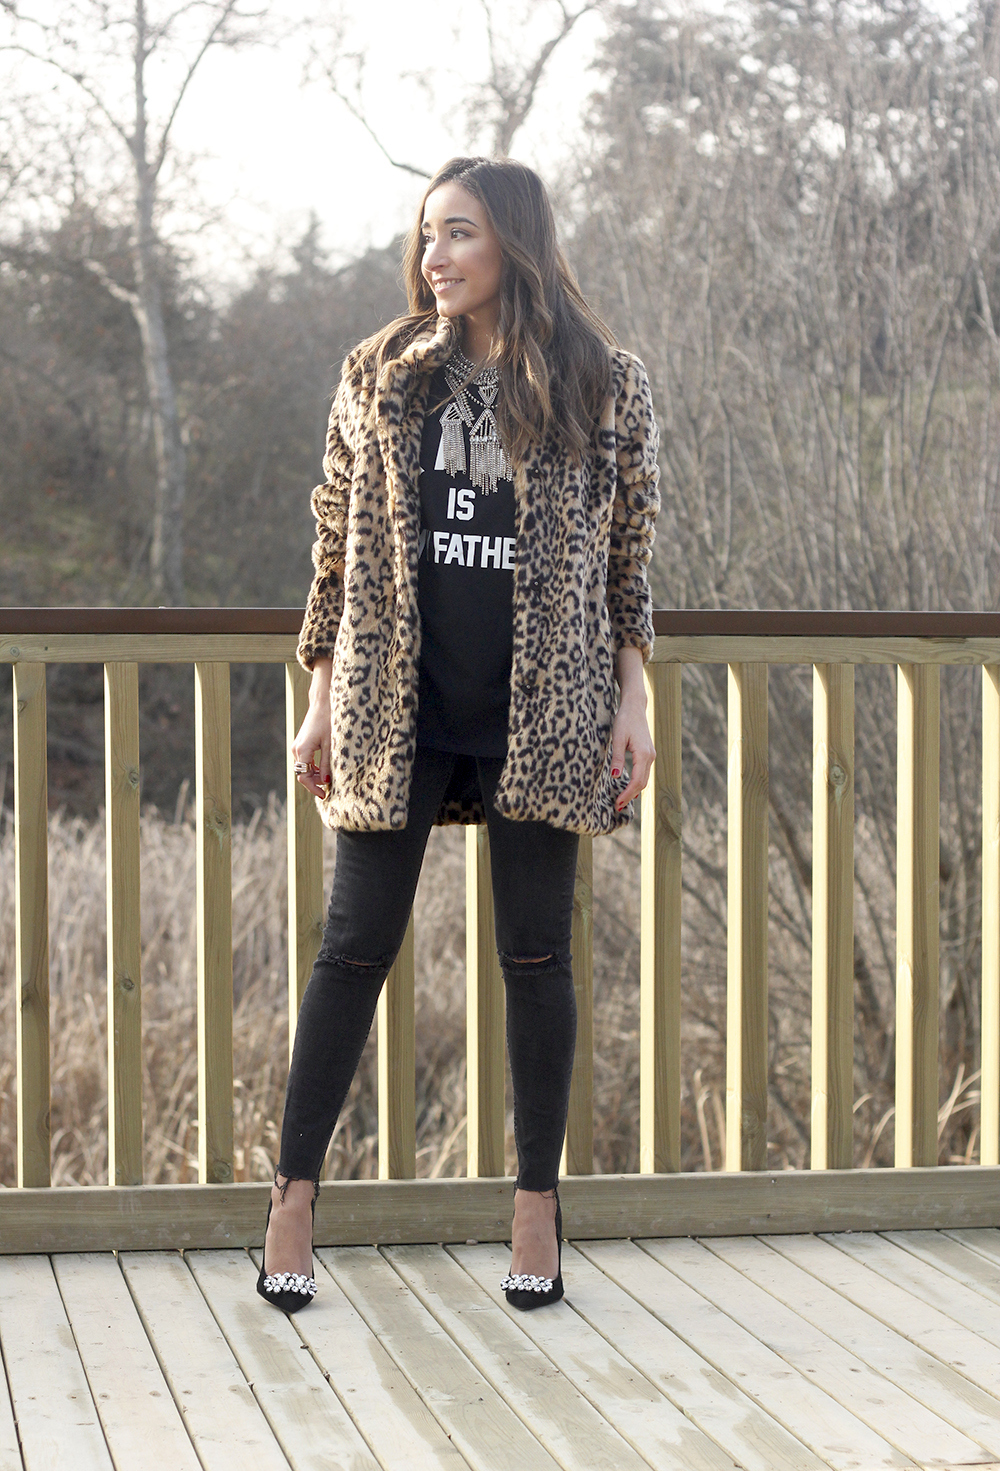 leopard coat black jeans jewel heels outfit style new year fashion05